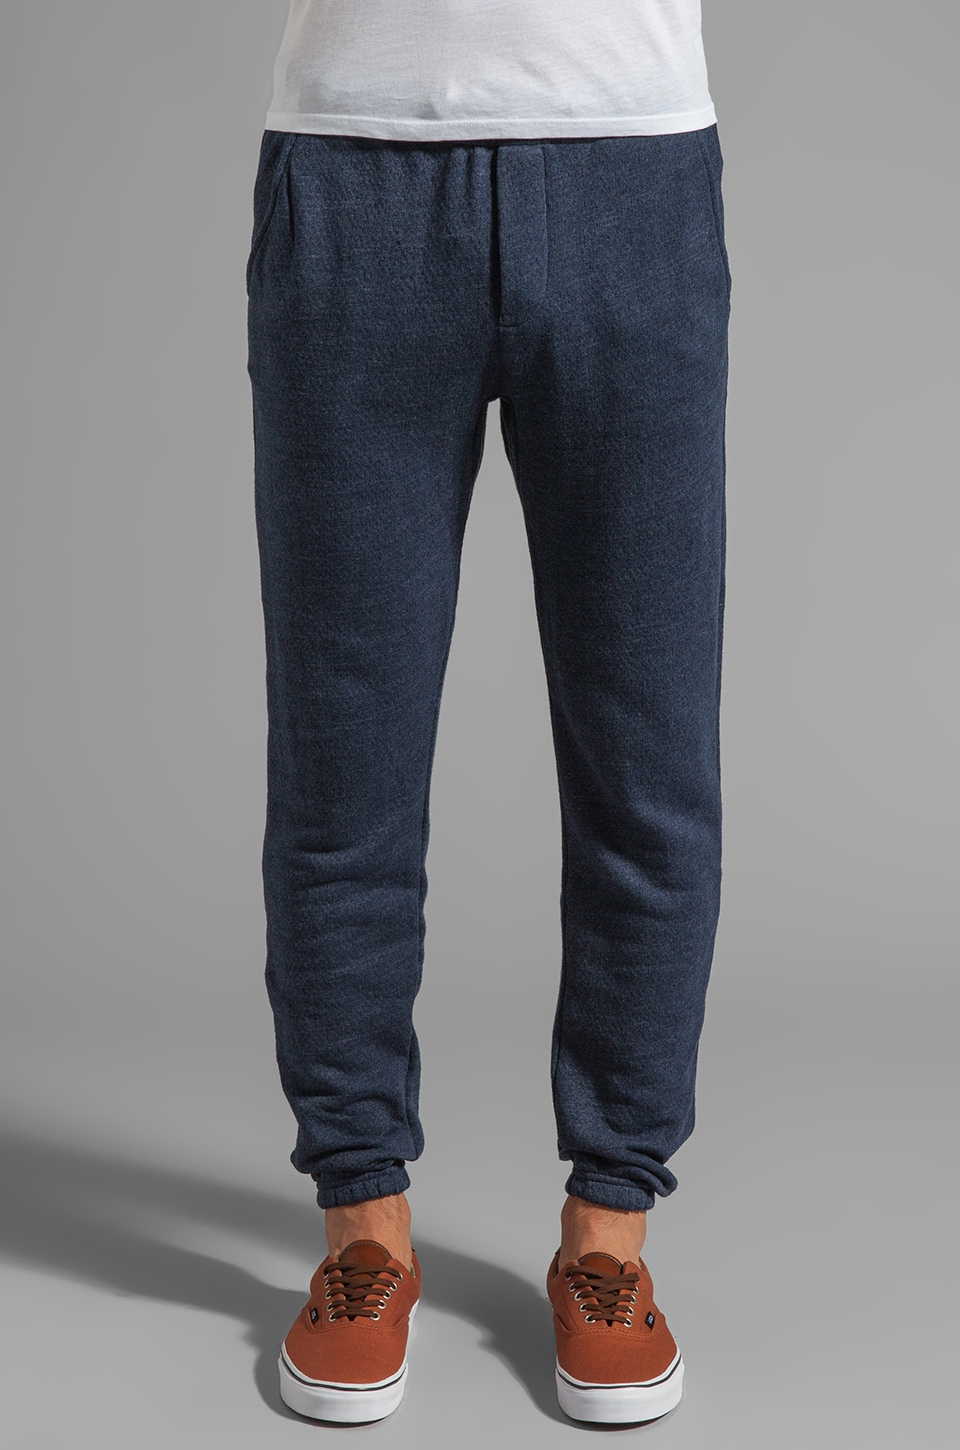 Obey Bowen Fleece Pants in Dark Navy